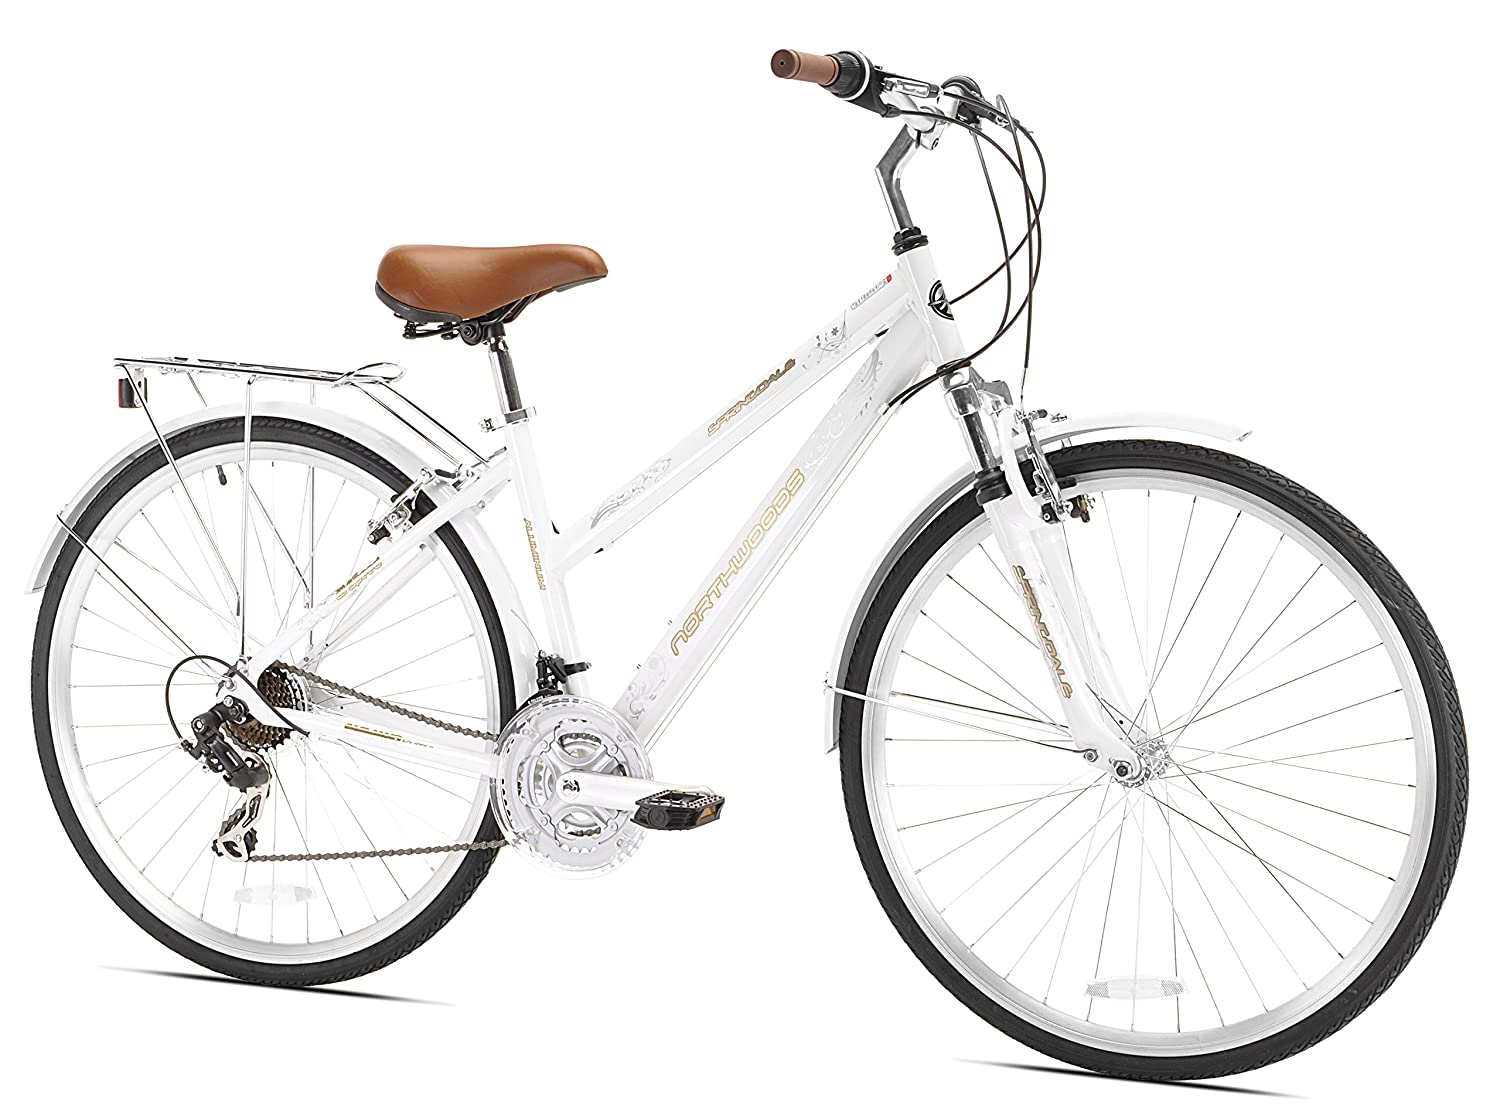 Northwoods Springdale Women's 21-speed Hybrid Bicycle